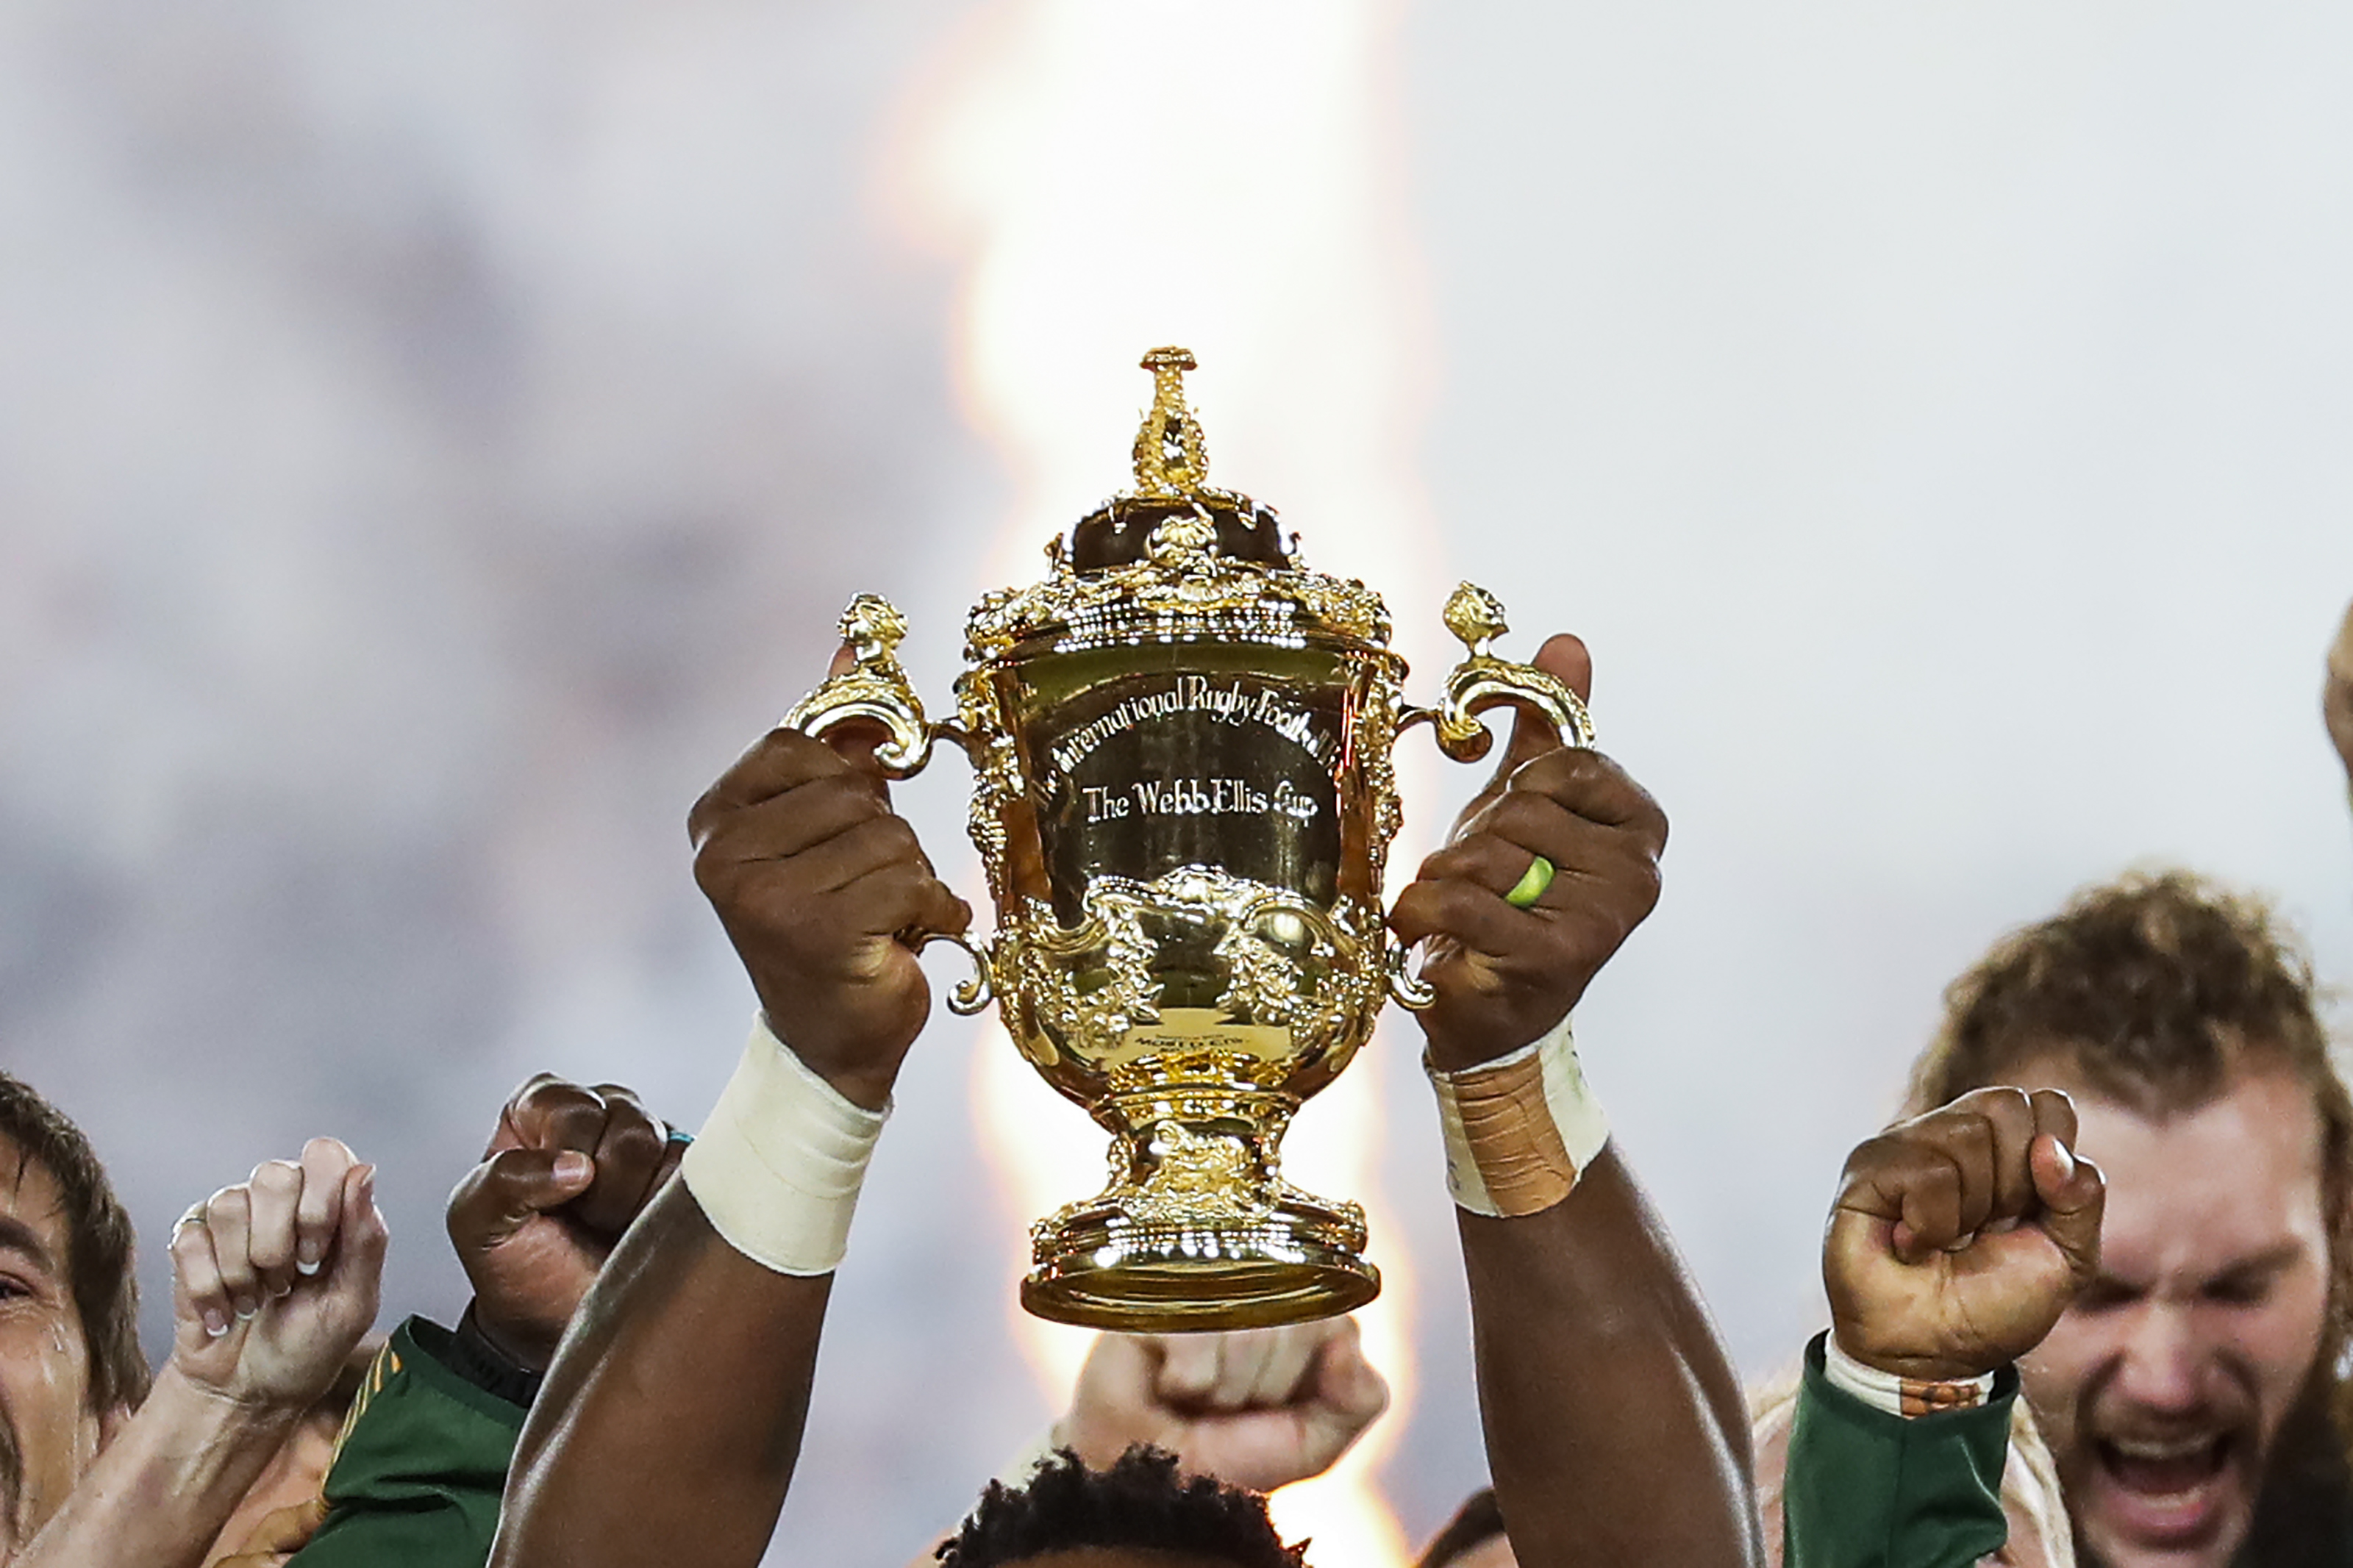 South Africa's flanker Siya Kolisi lifts the Webb Ellis Cup as they celebrate winning the Japan 2019 Rugby World Cup final match between England and South Africa at the International Stadium Yokohama in Yokohama on November 2, 2019.